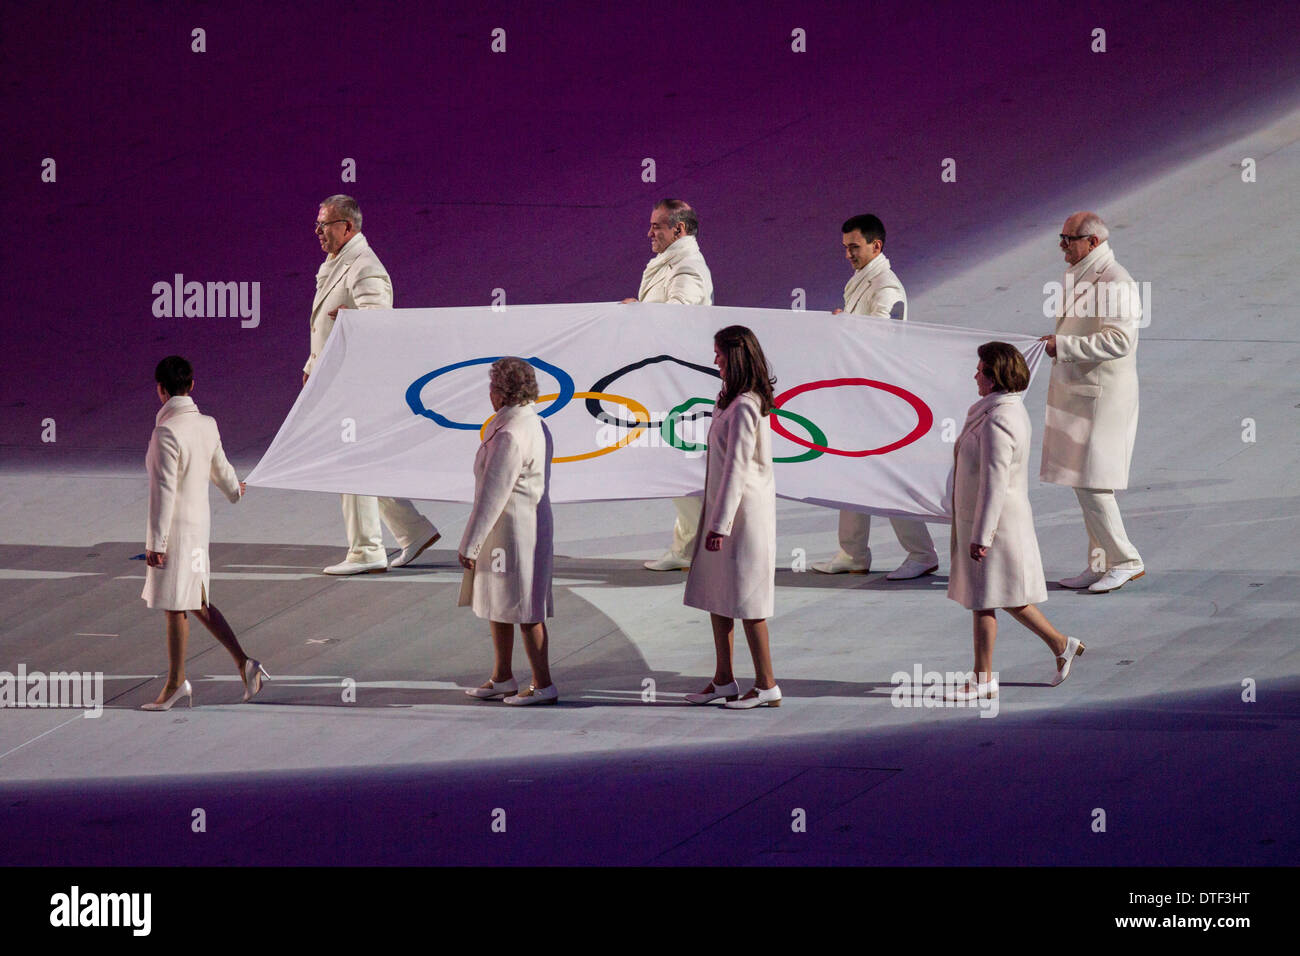 The Olympic Flag enters during the Opening Ceremonies at the Olympic Winter Games, Sochi 2014 - Stock Image